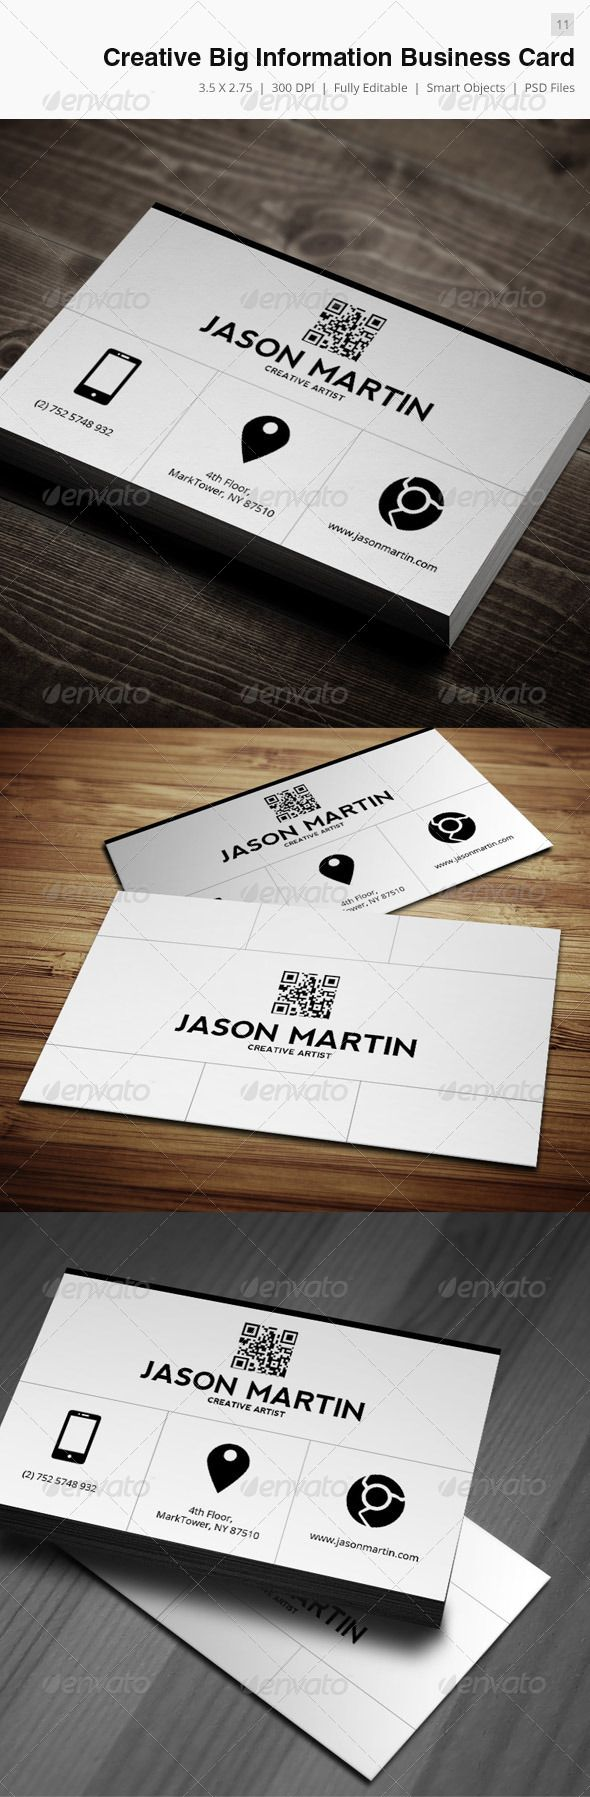 648 best cool business cards images on pinterest business card big information business card 11 reheart Images